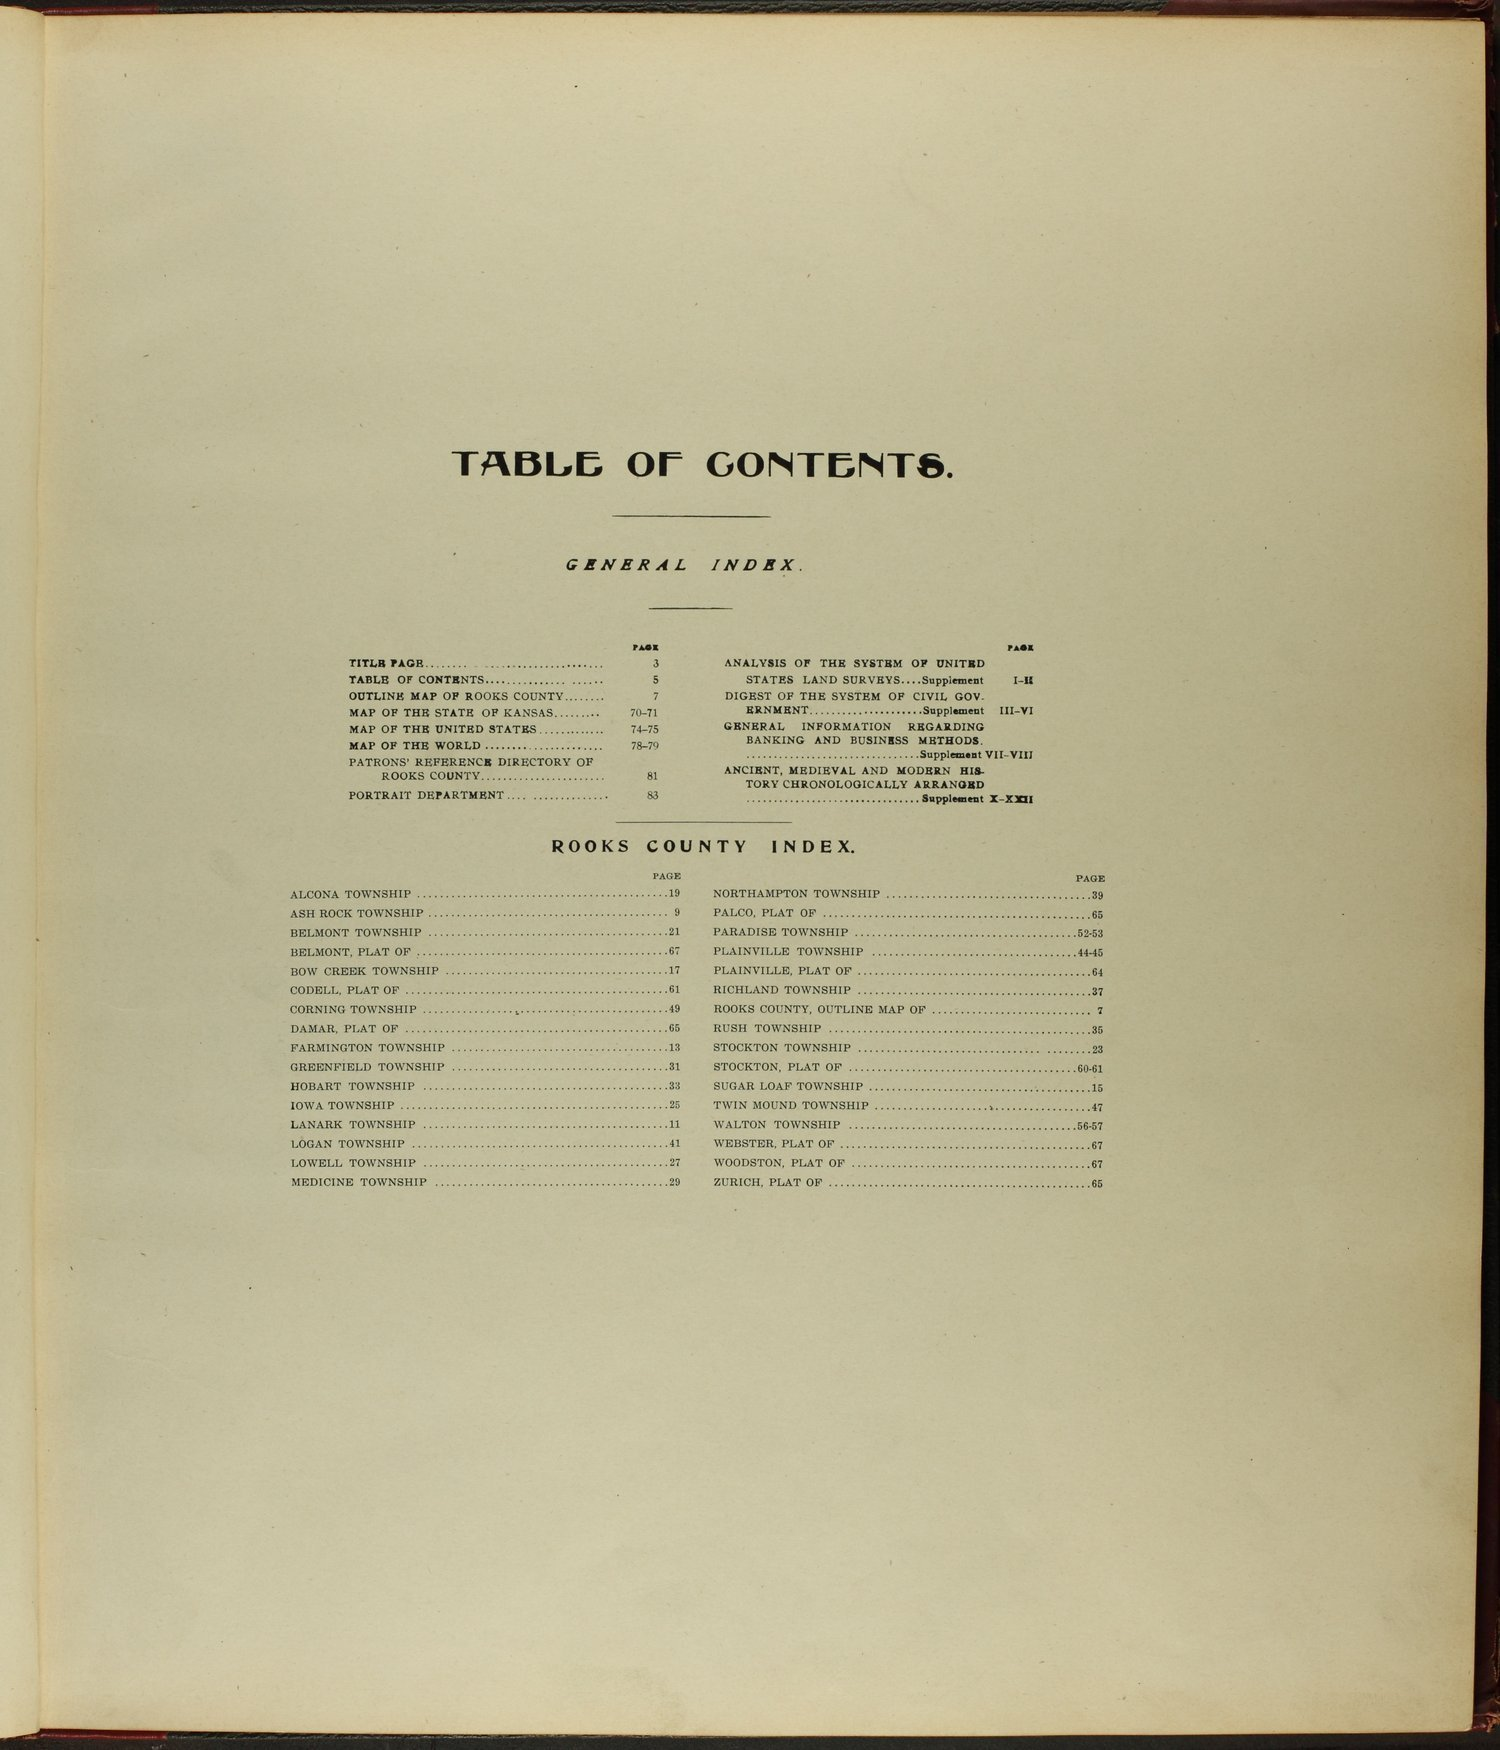 Standard atlas of Rooks County, Kansas - Table of Contents